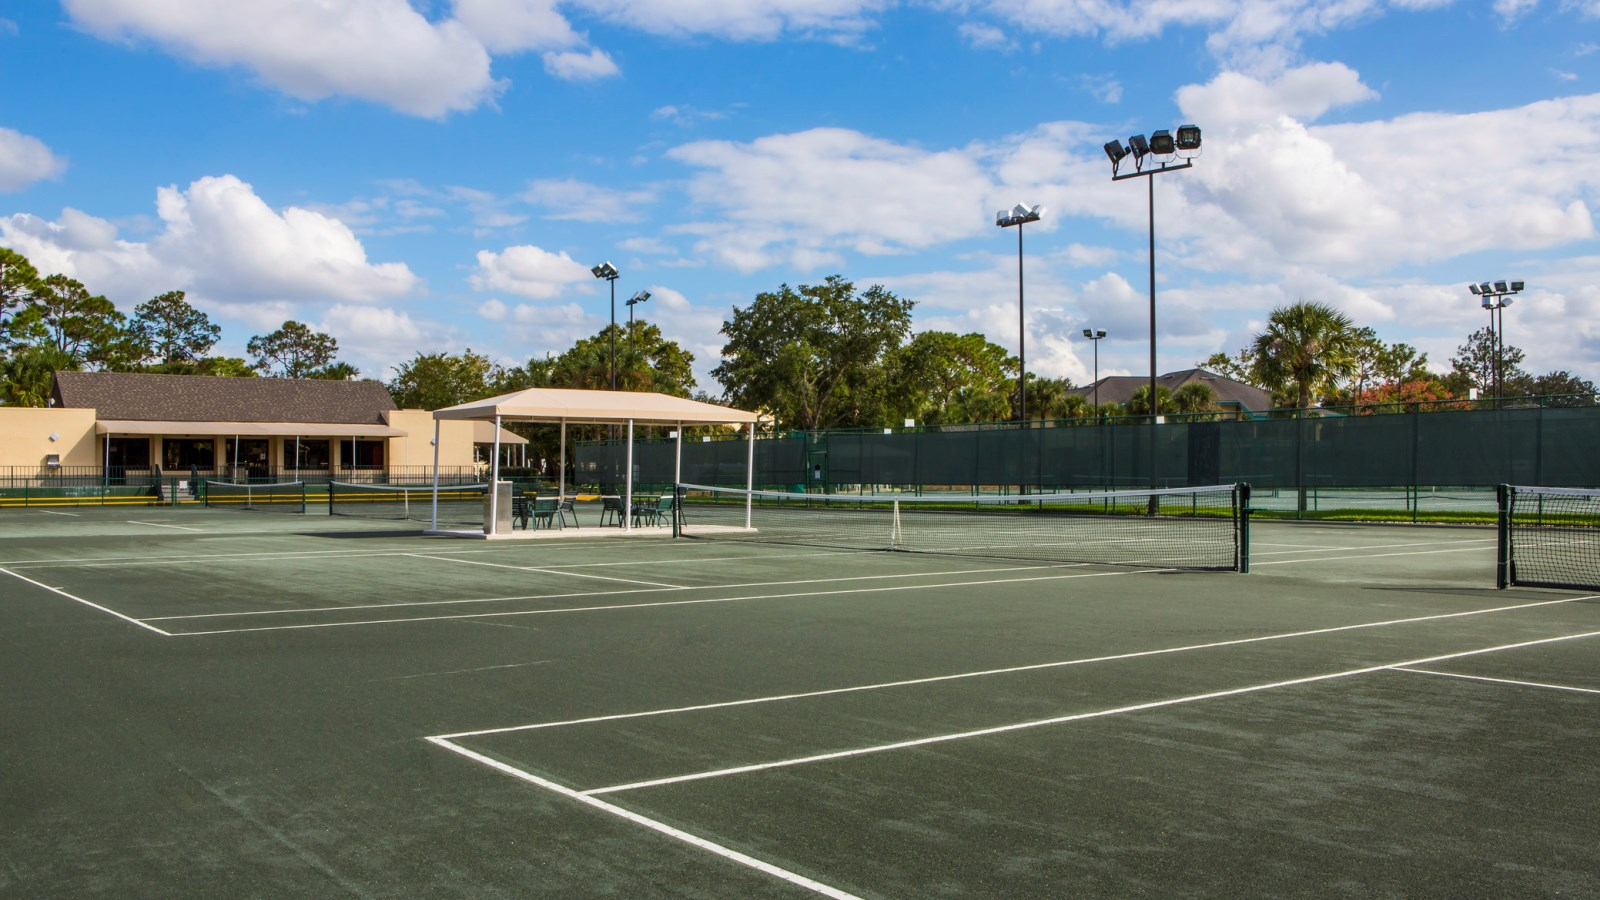 Tennis Courts Sheraton Vistana Resort Villas, Lake Buena Vista, Orlando